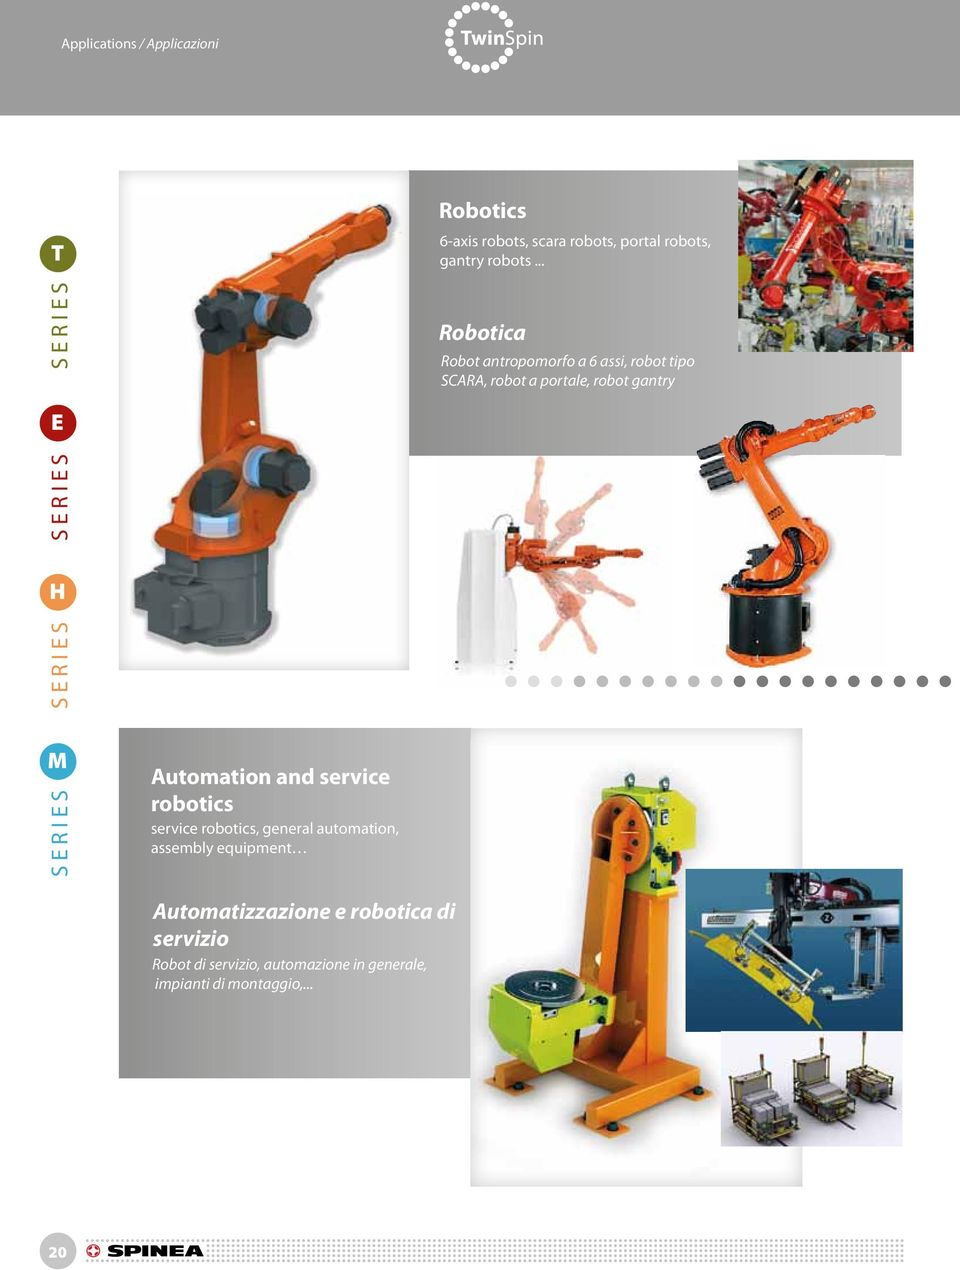 Automation and service robotics service robotics, general automation, assembly equipment